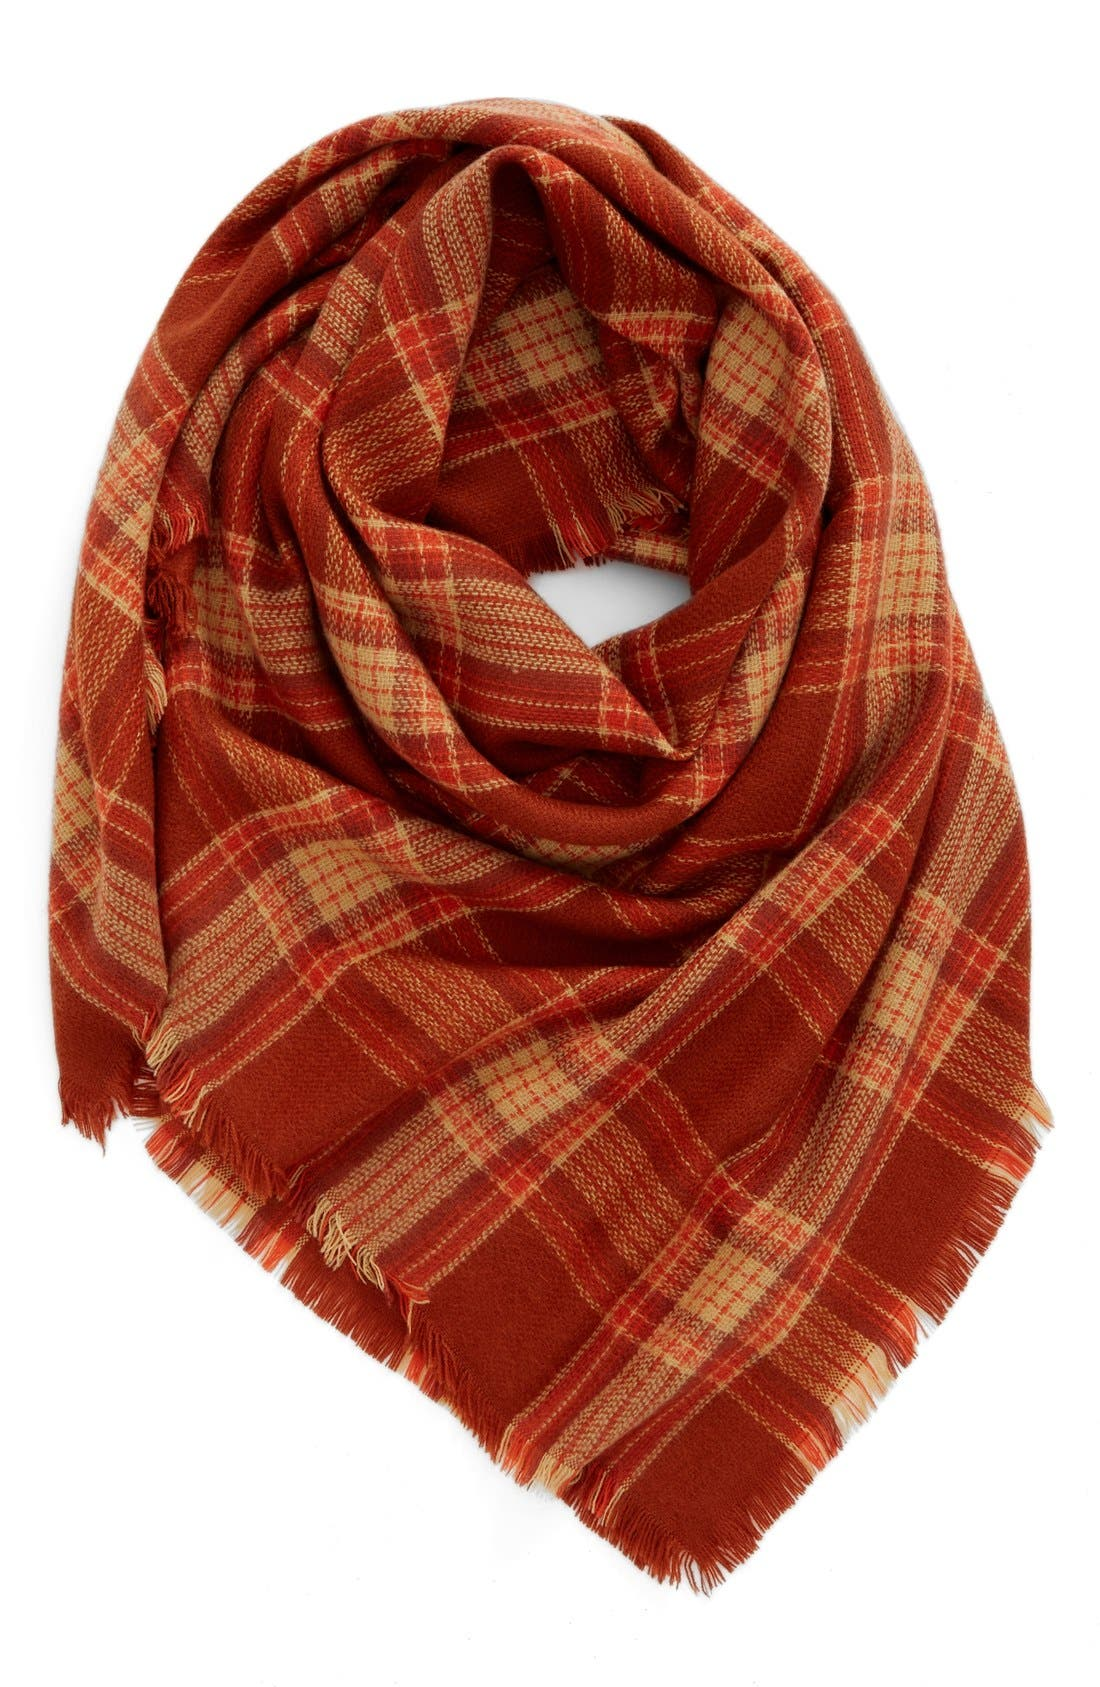 Alternate Image 1 Selected - BP. Plaid Square Scarf